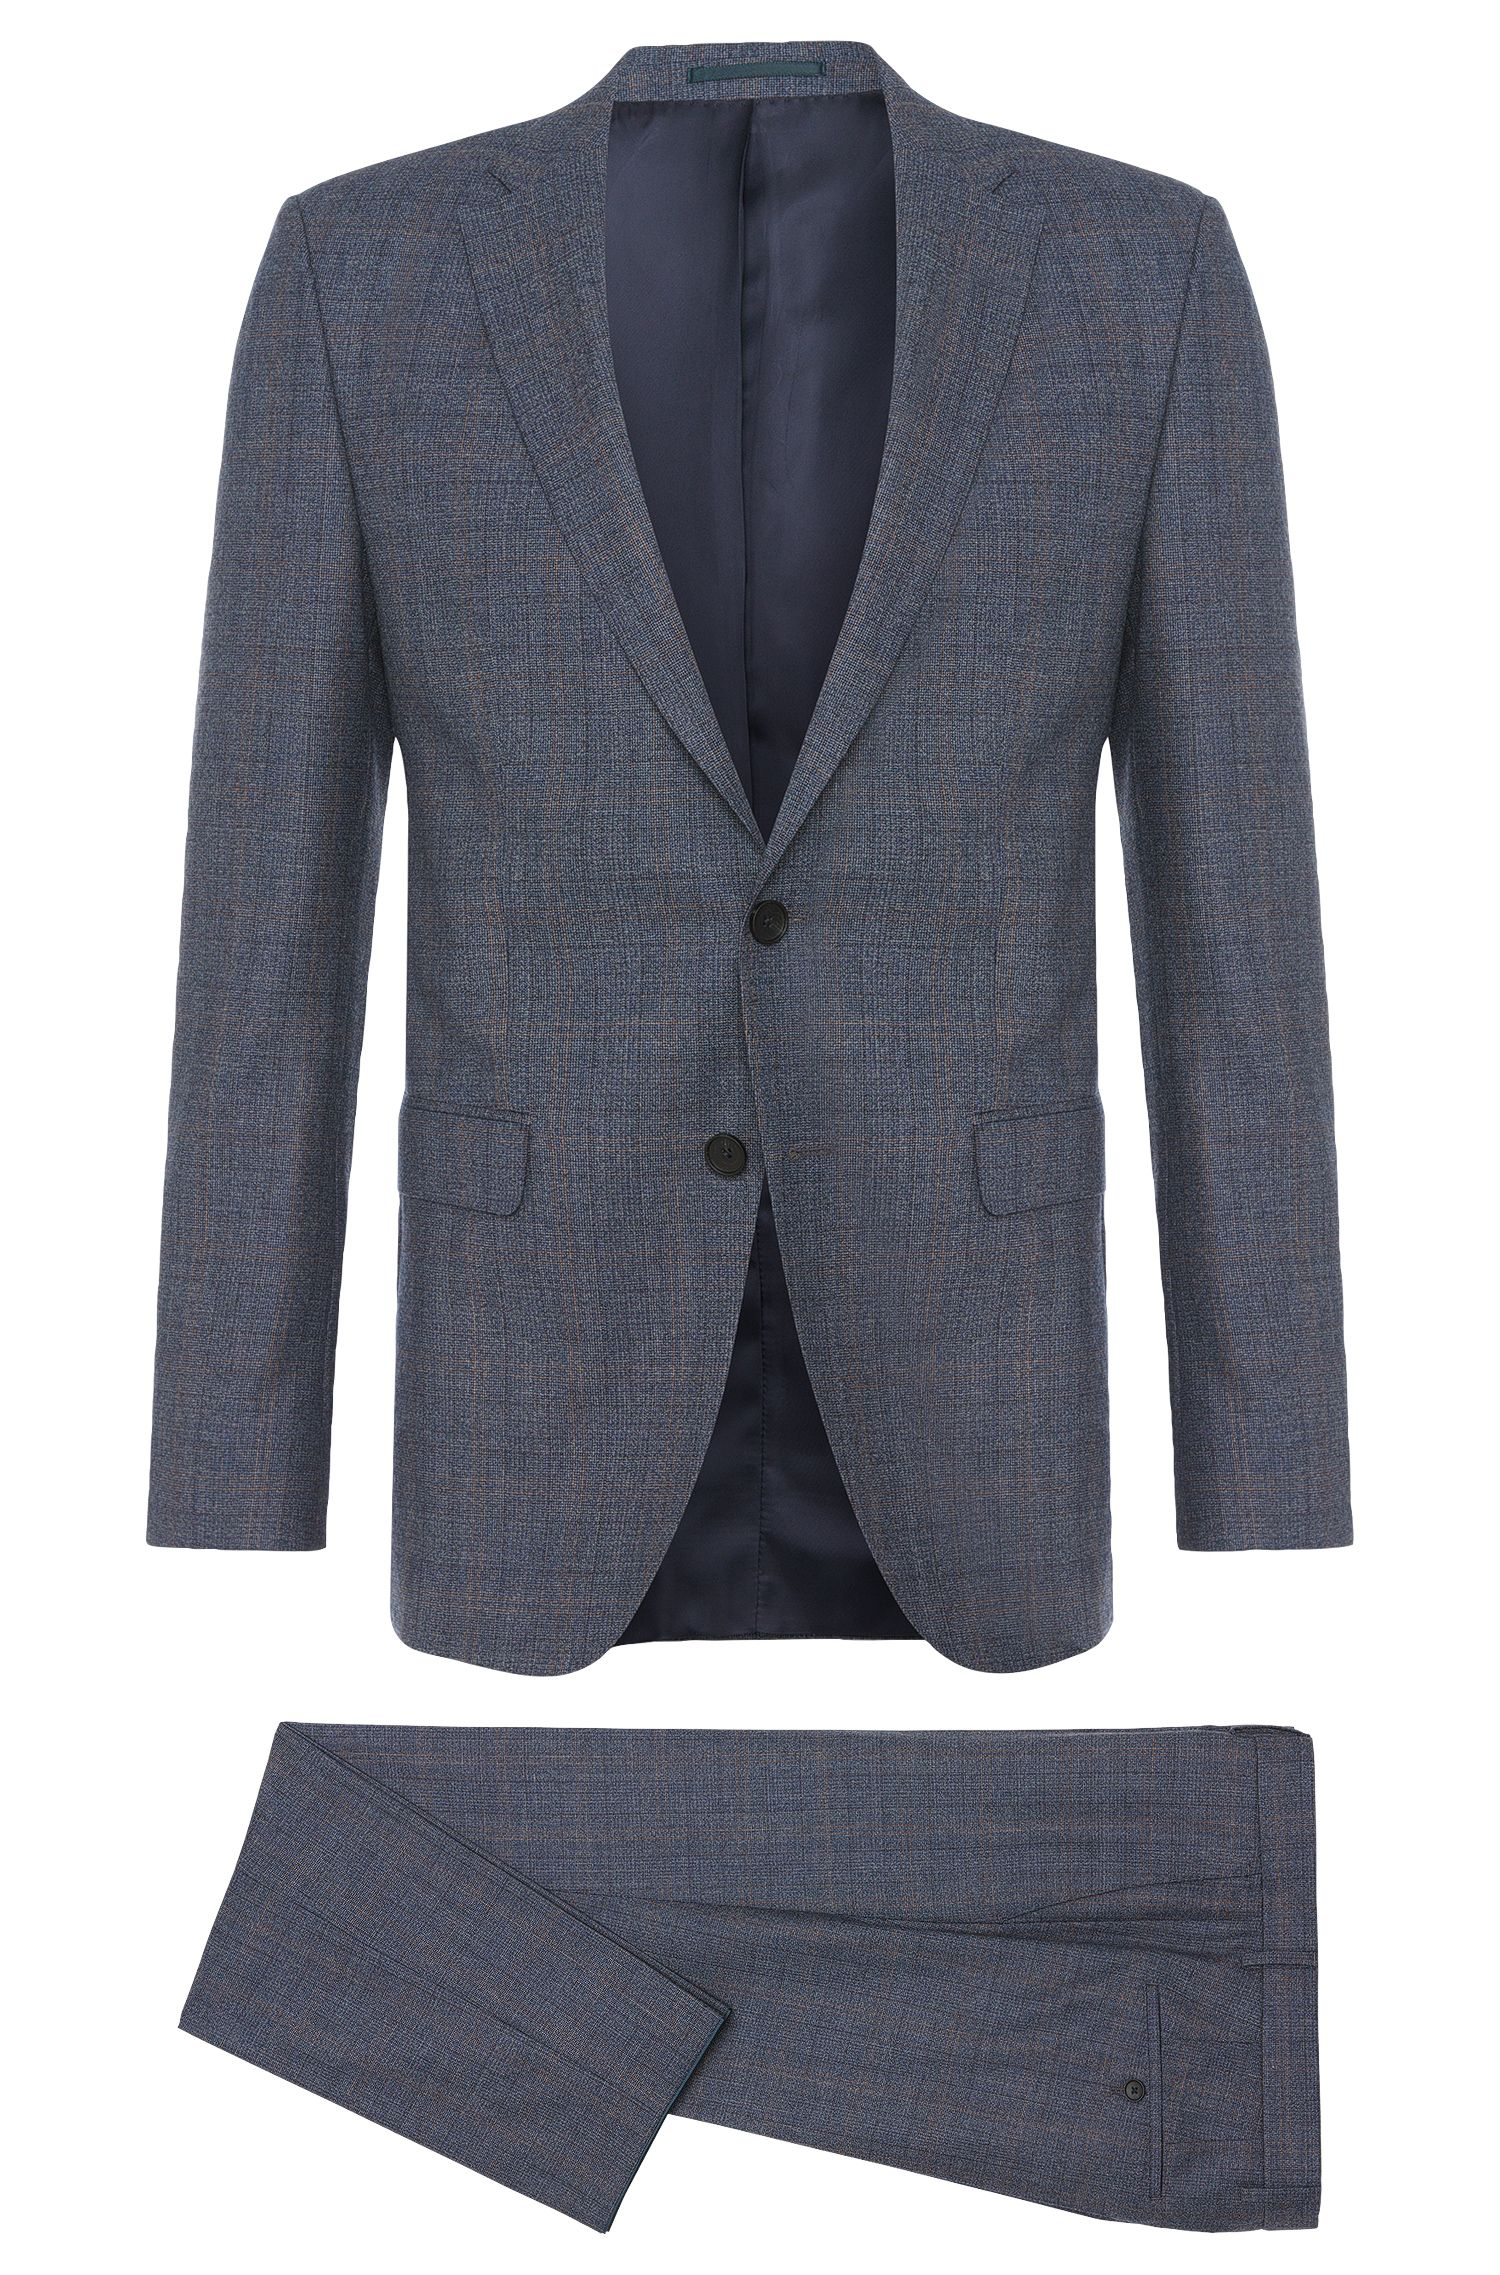 'Novan/Ben' | Slim Fit, Italian Virgin Wool Suit